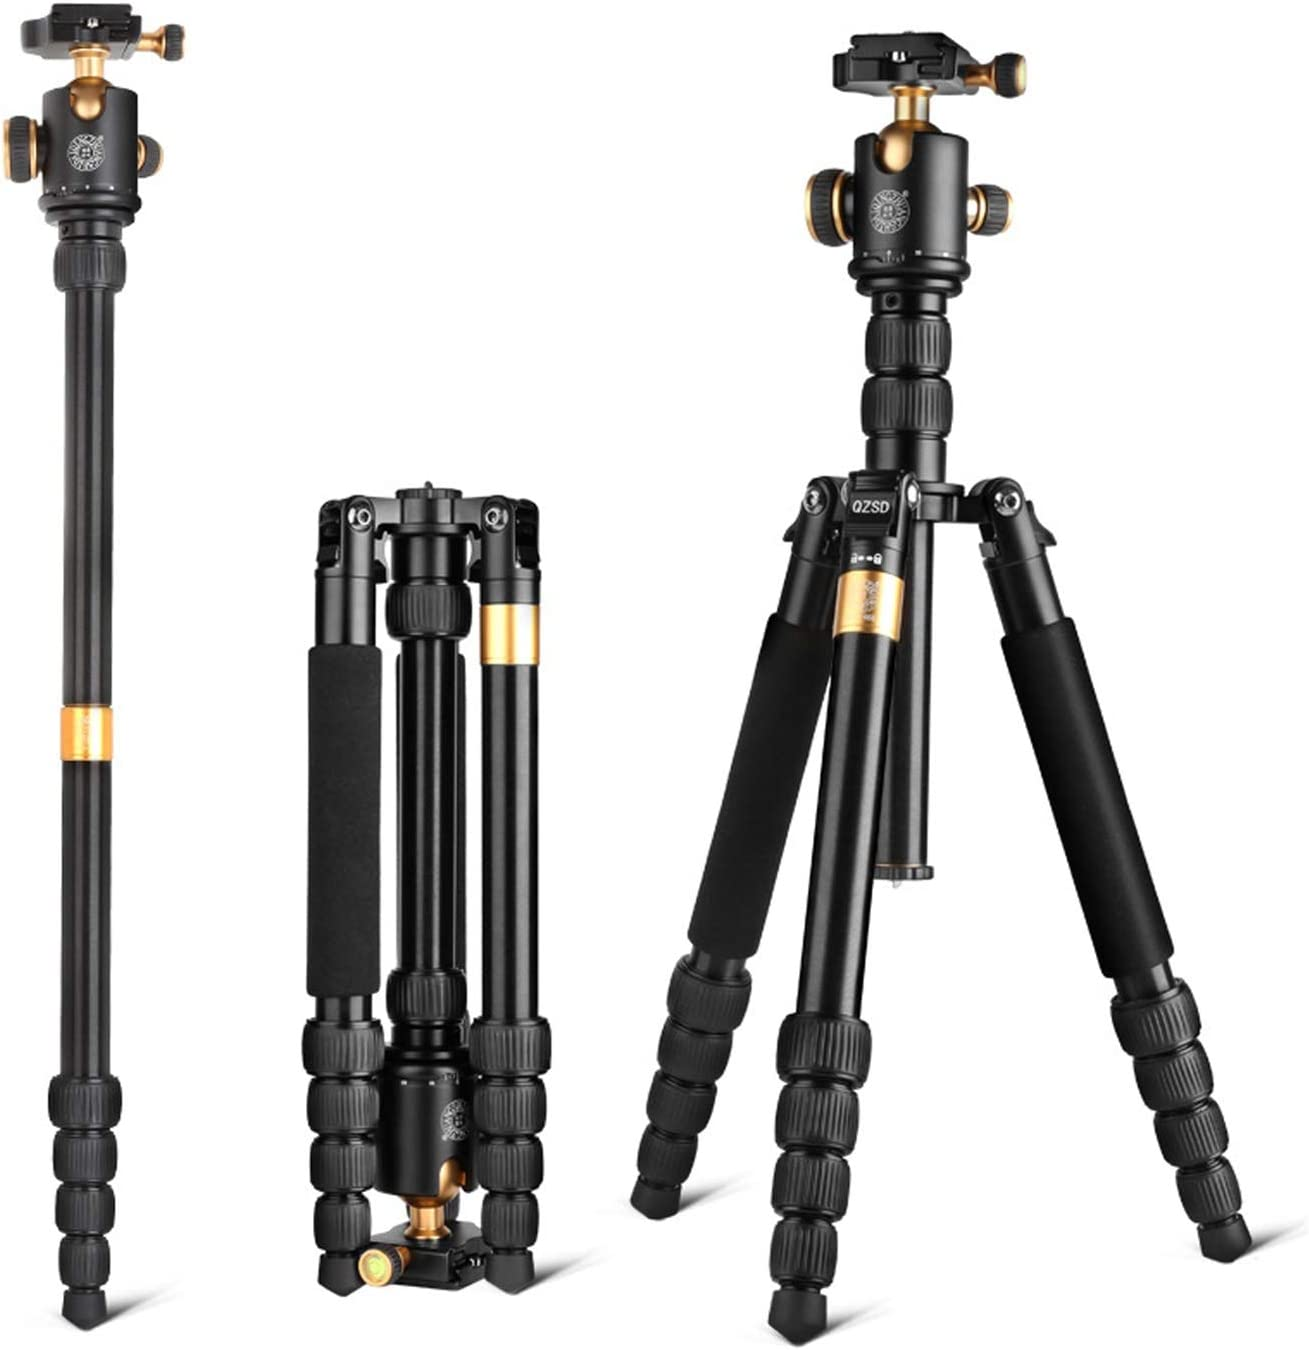 Color : Black LLluckyHW DSLR Tripod Travel Tripod Photography Video Shooting Carrying Bag for Travel Use as Camera Tripod Cameras Up to 22 Pounds Travel Tripod